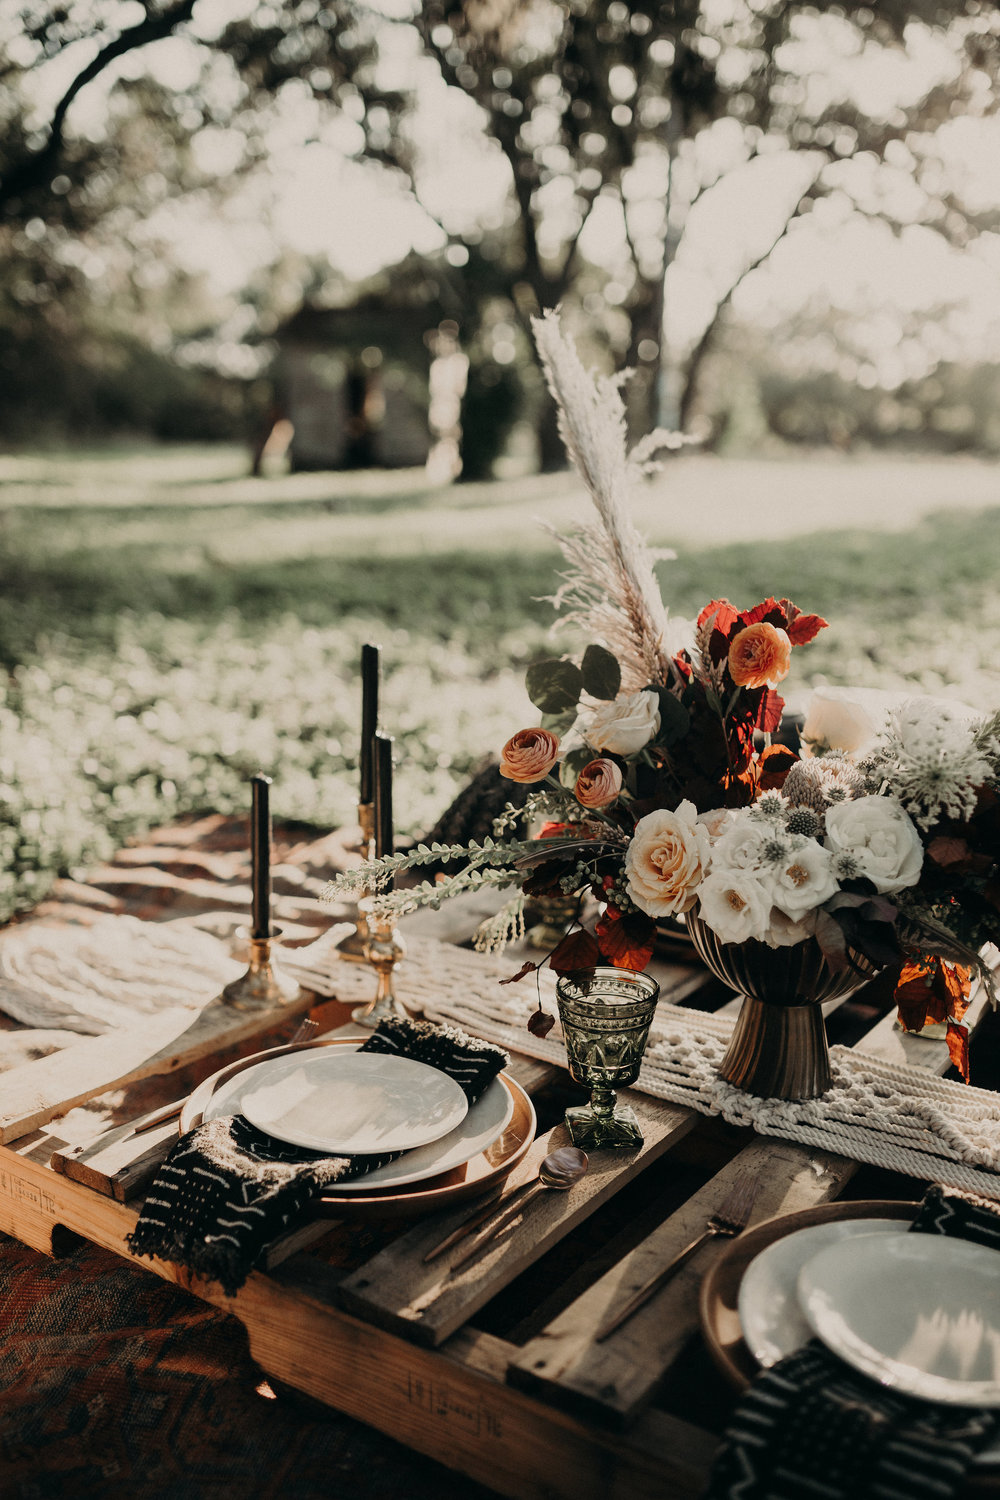 Trek+Bloom-FallInspirationElopement10092017-49.jpg